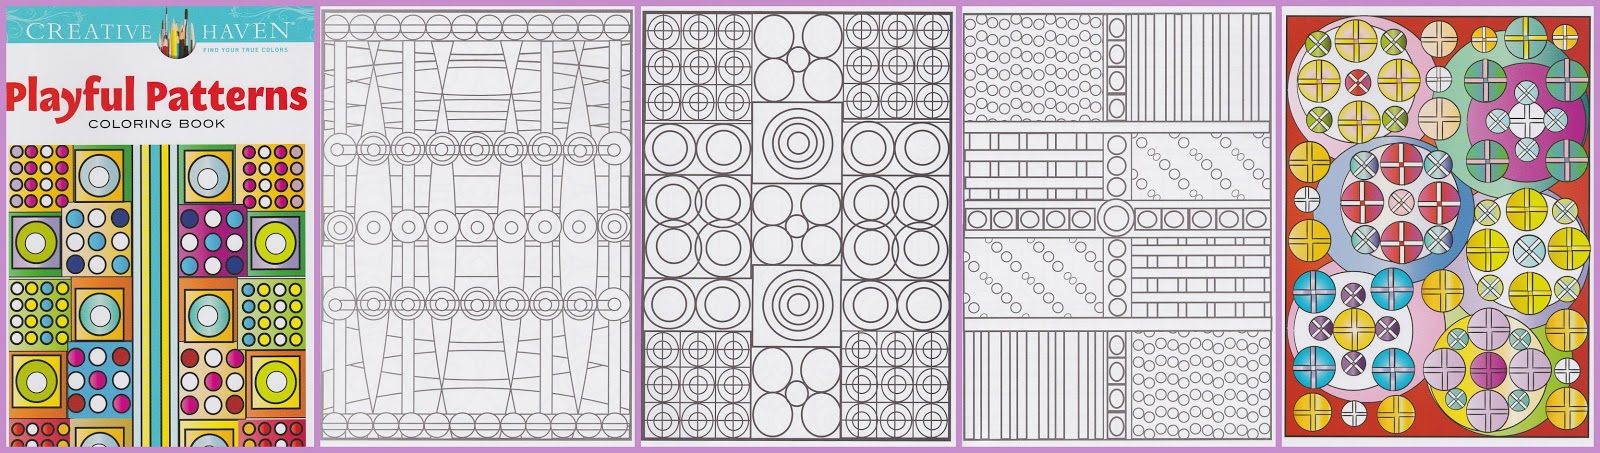 CH 100 playful patterns, kleurboek geometrische patronen